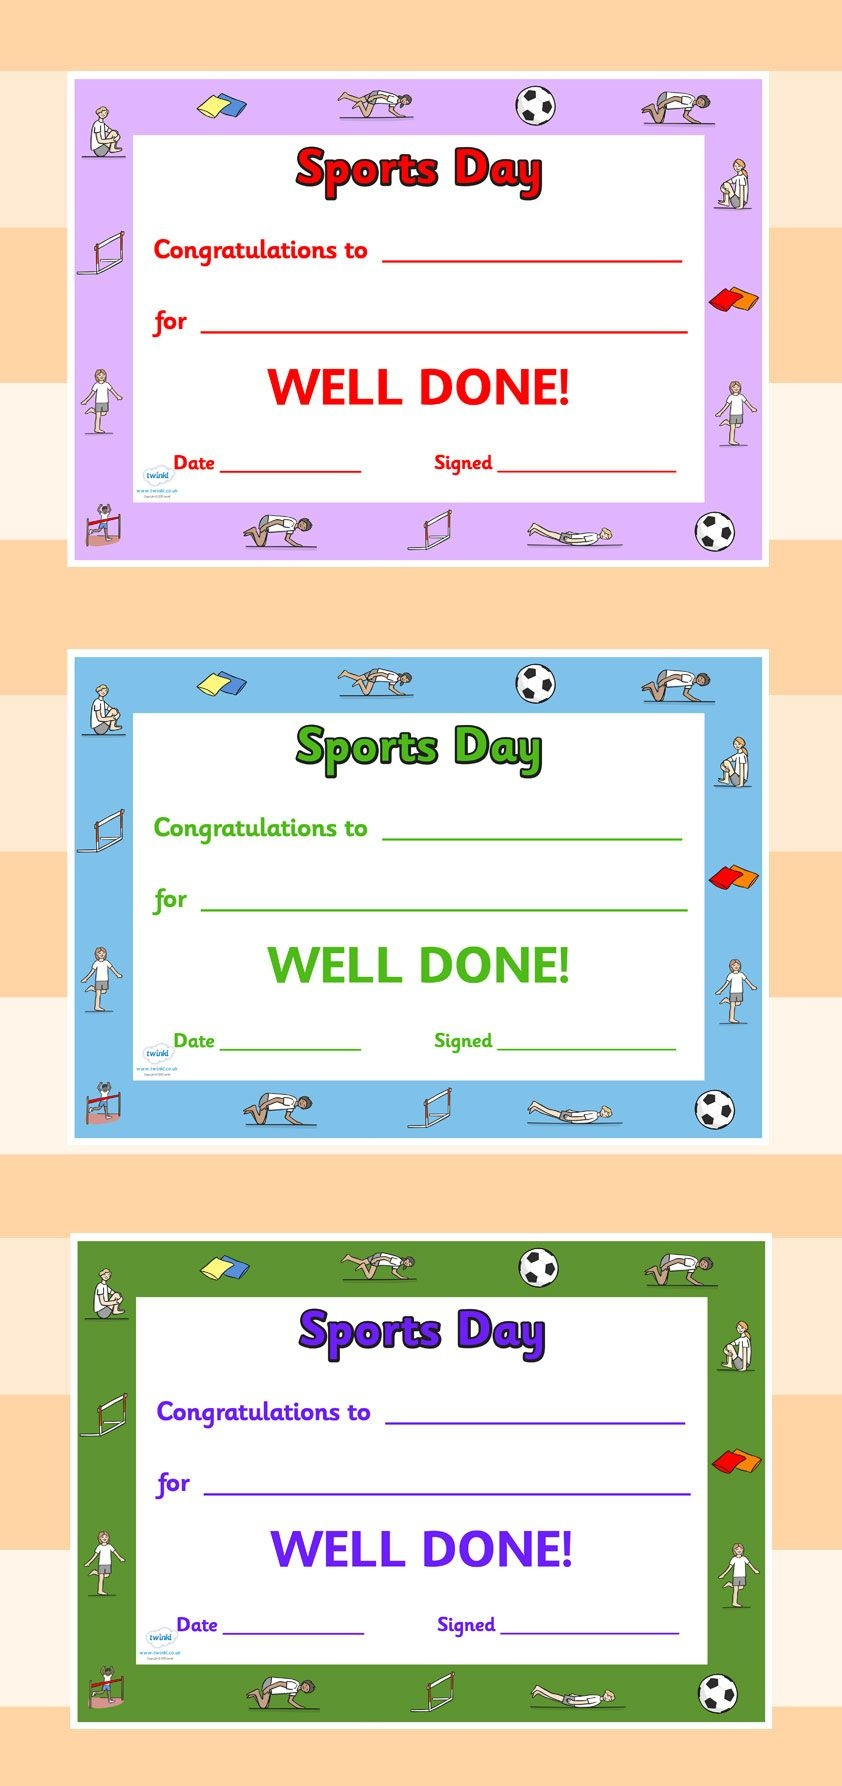 Twinkl Resources >> Editable Sports Day Award Certificates - Free Printable Sports Day Certificates